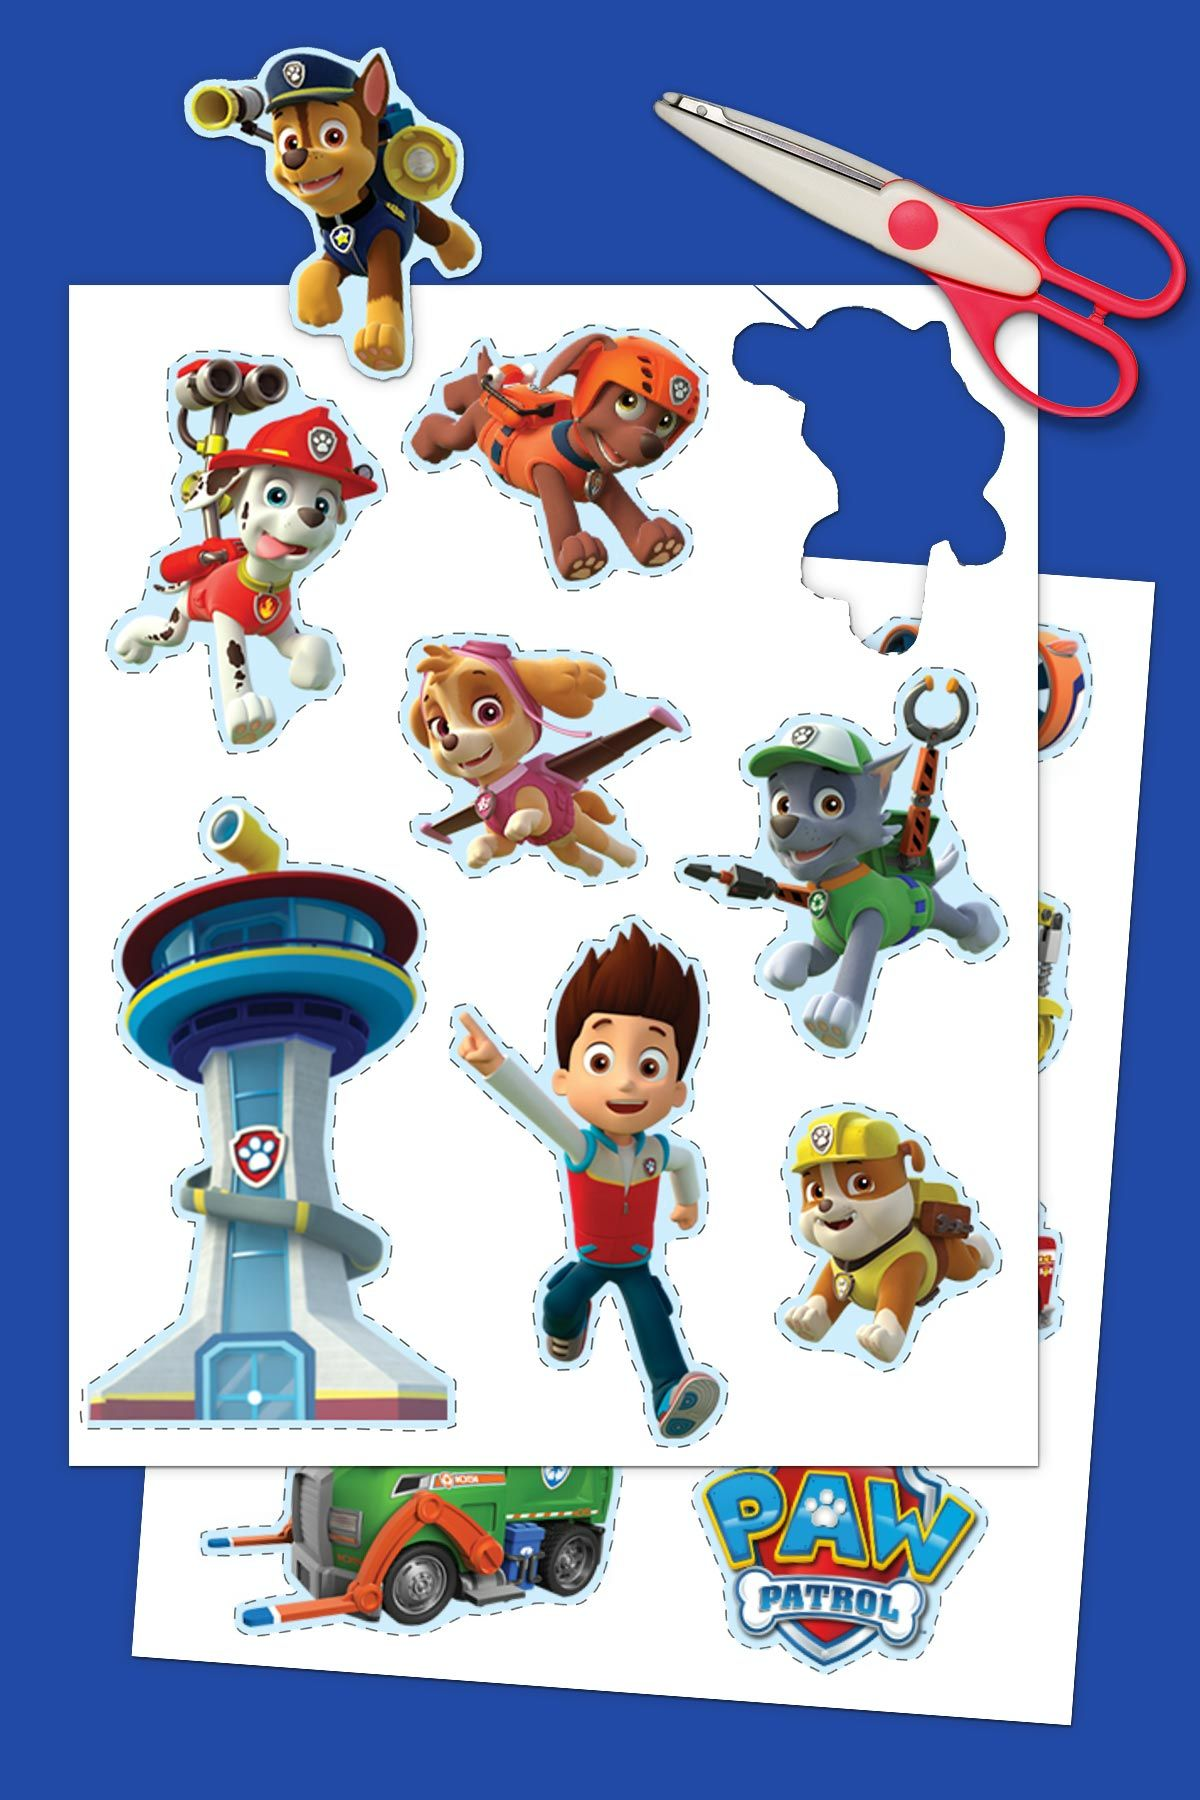 Make Your Own Paw Patrol Character : patrol, character, Patrol, Printable, Stickers, Stickers,, Printables,, Birthday